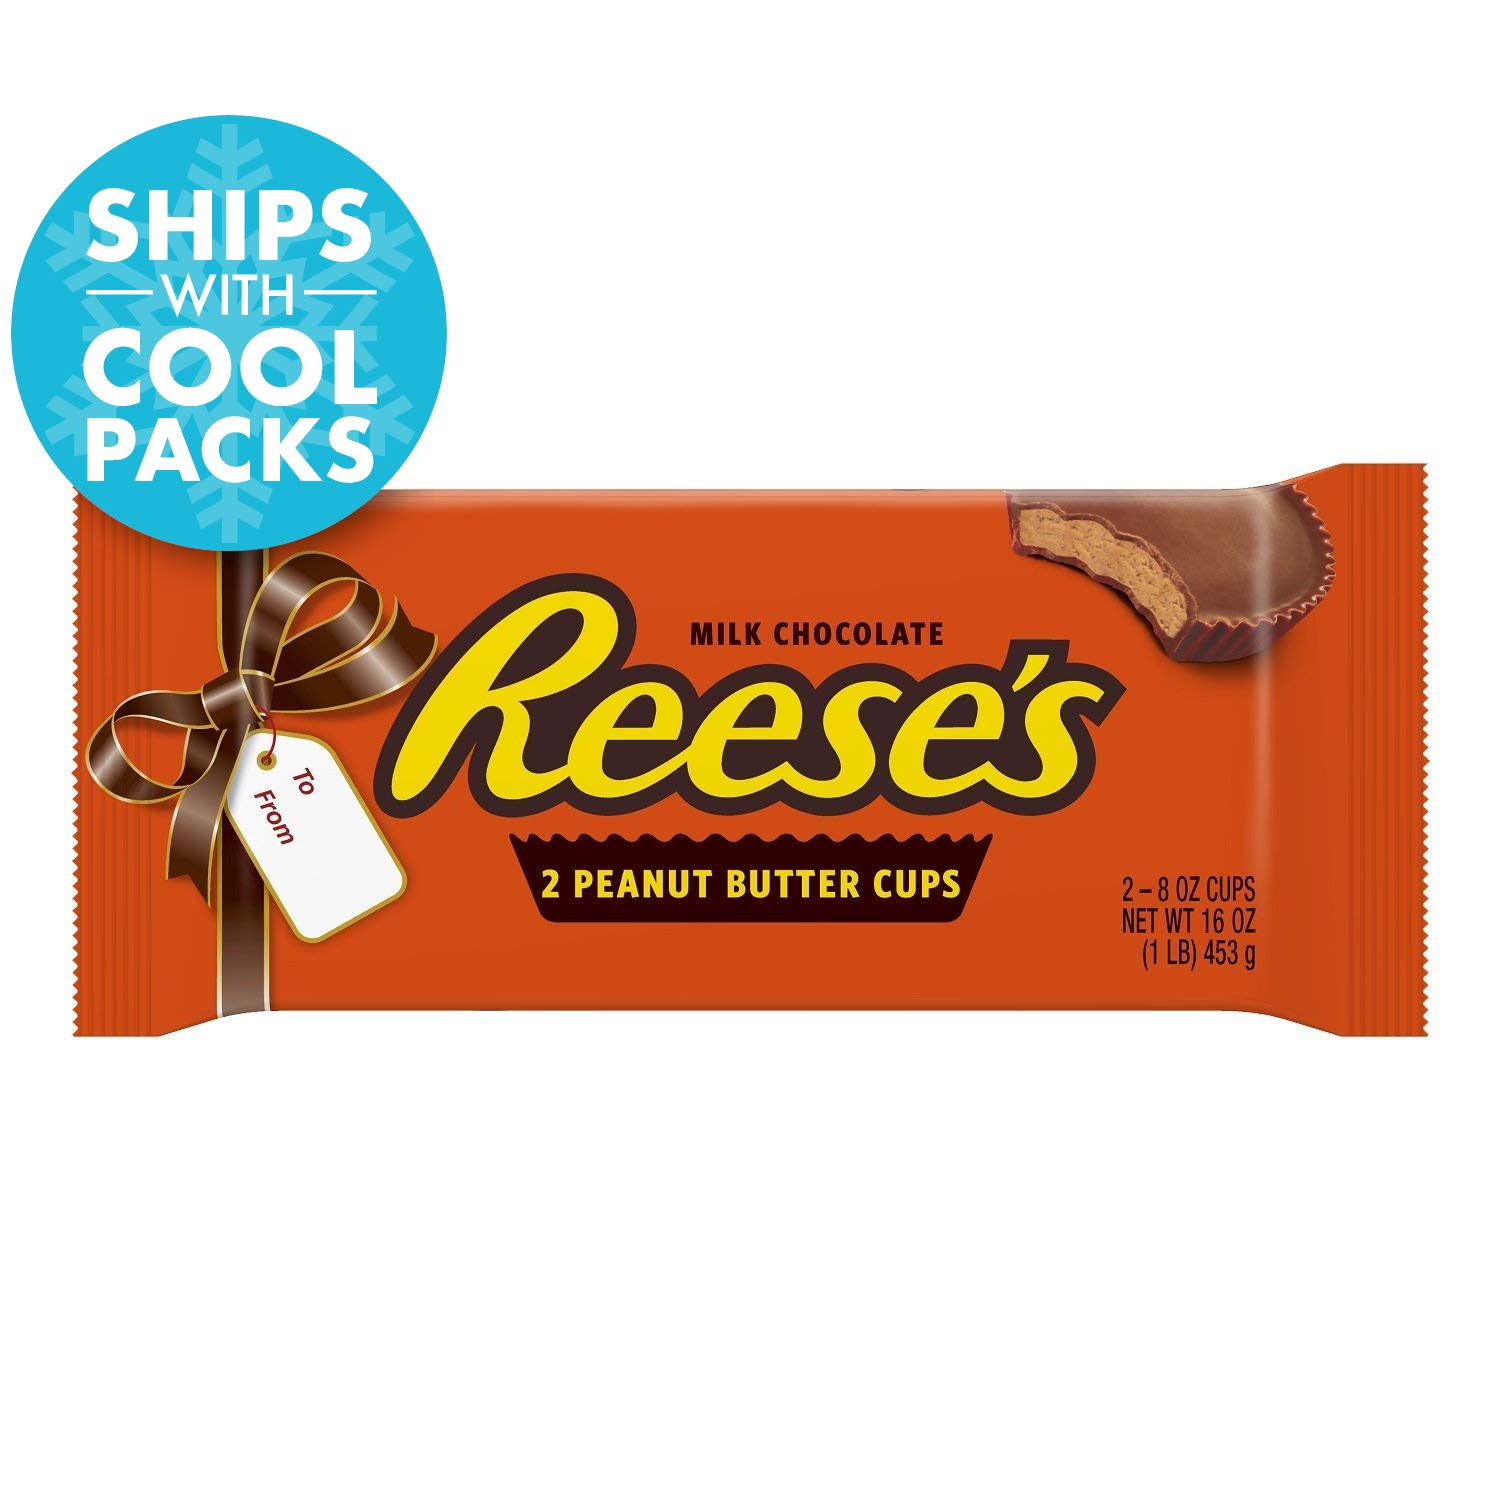 REESE'S 1 Pound, Chocolate Candy, Peanut Butter Cups, 1 LB Bar